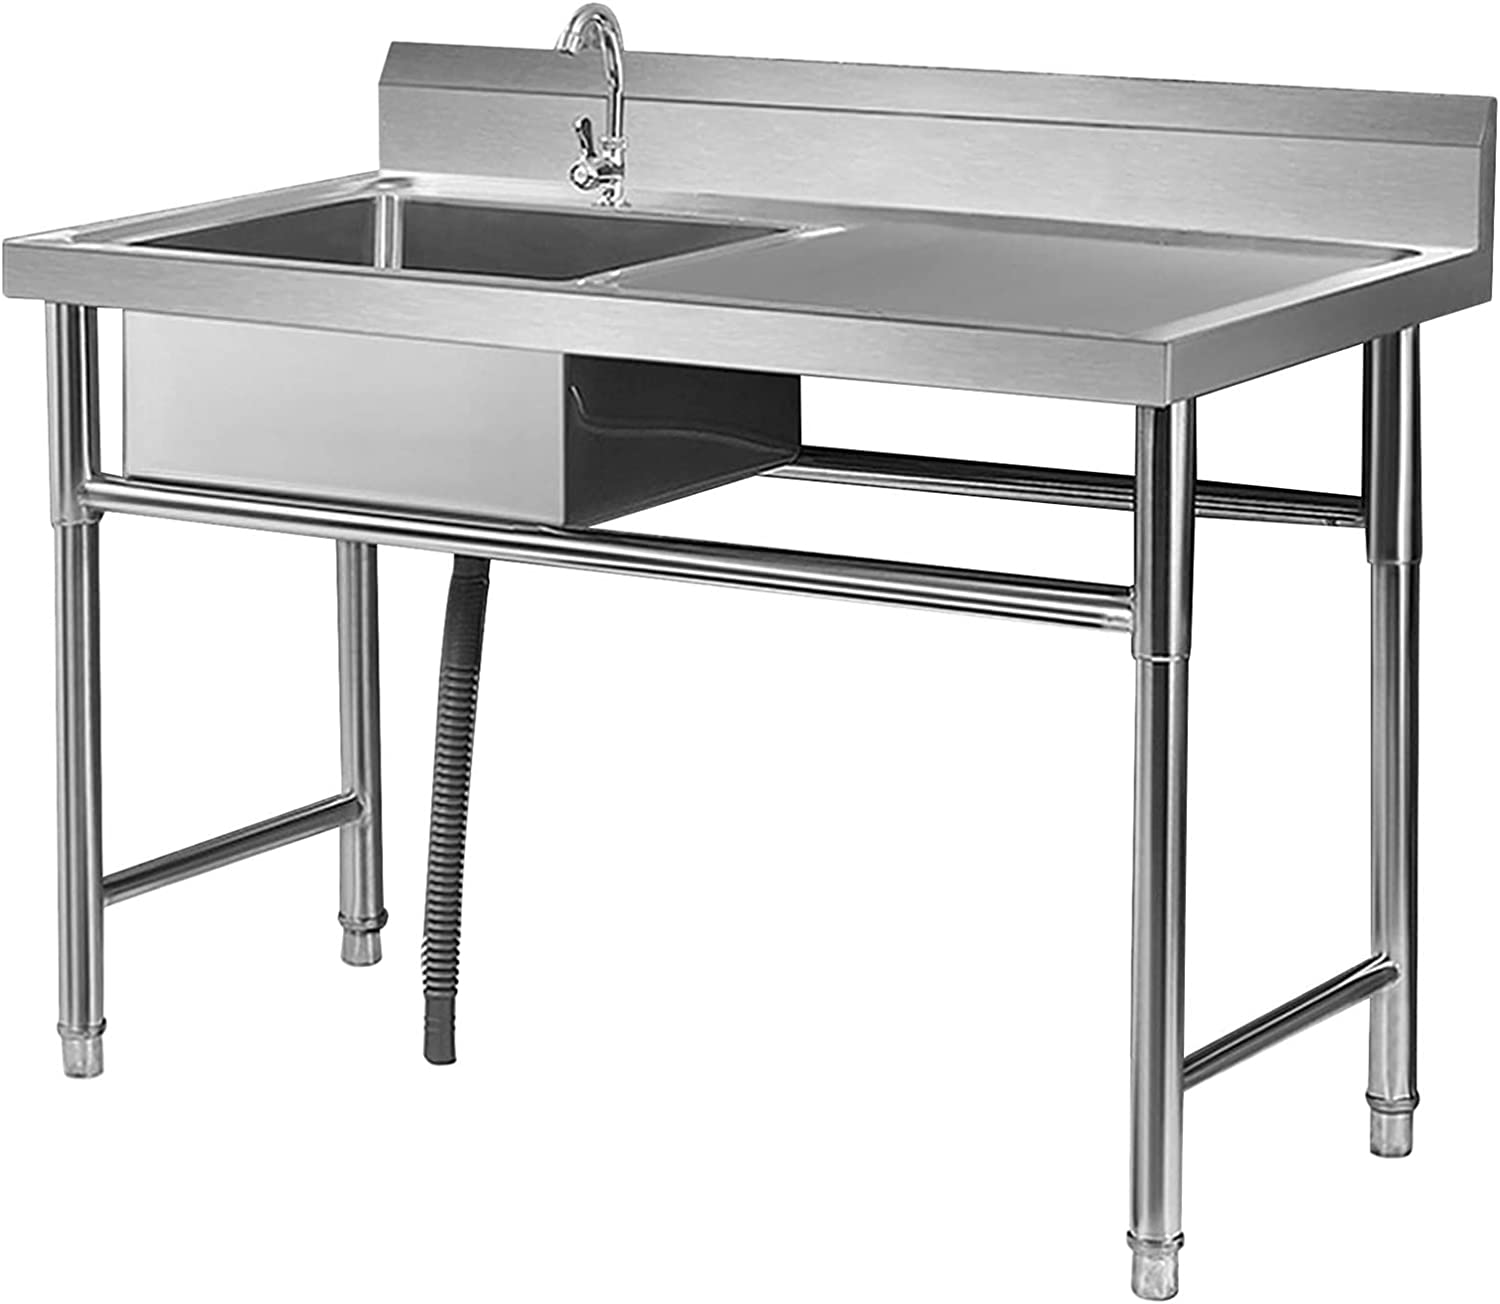 Attention brand Free Standing Max 63% OFF Utility Sink Stainless Commercial Steel Kitchen S